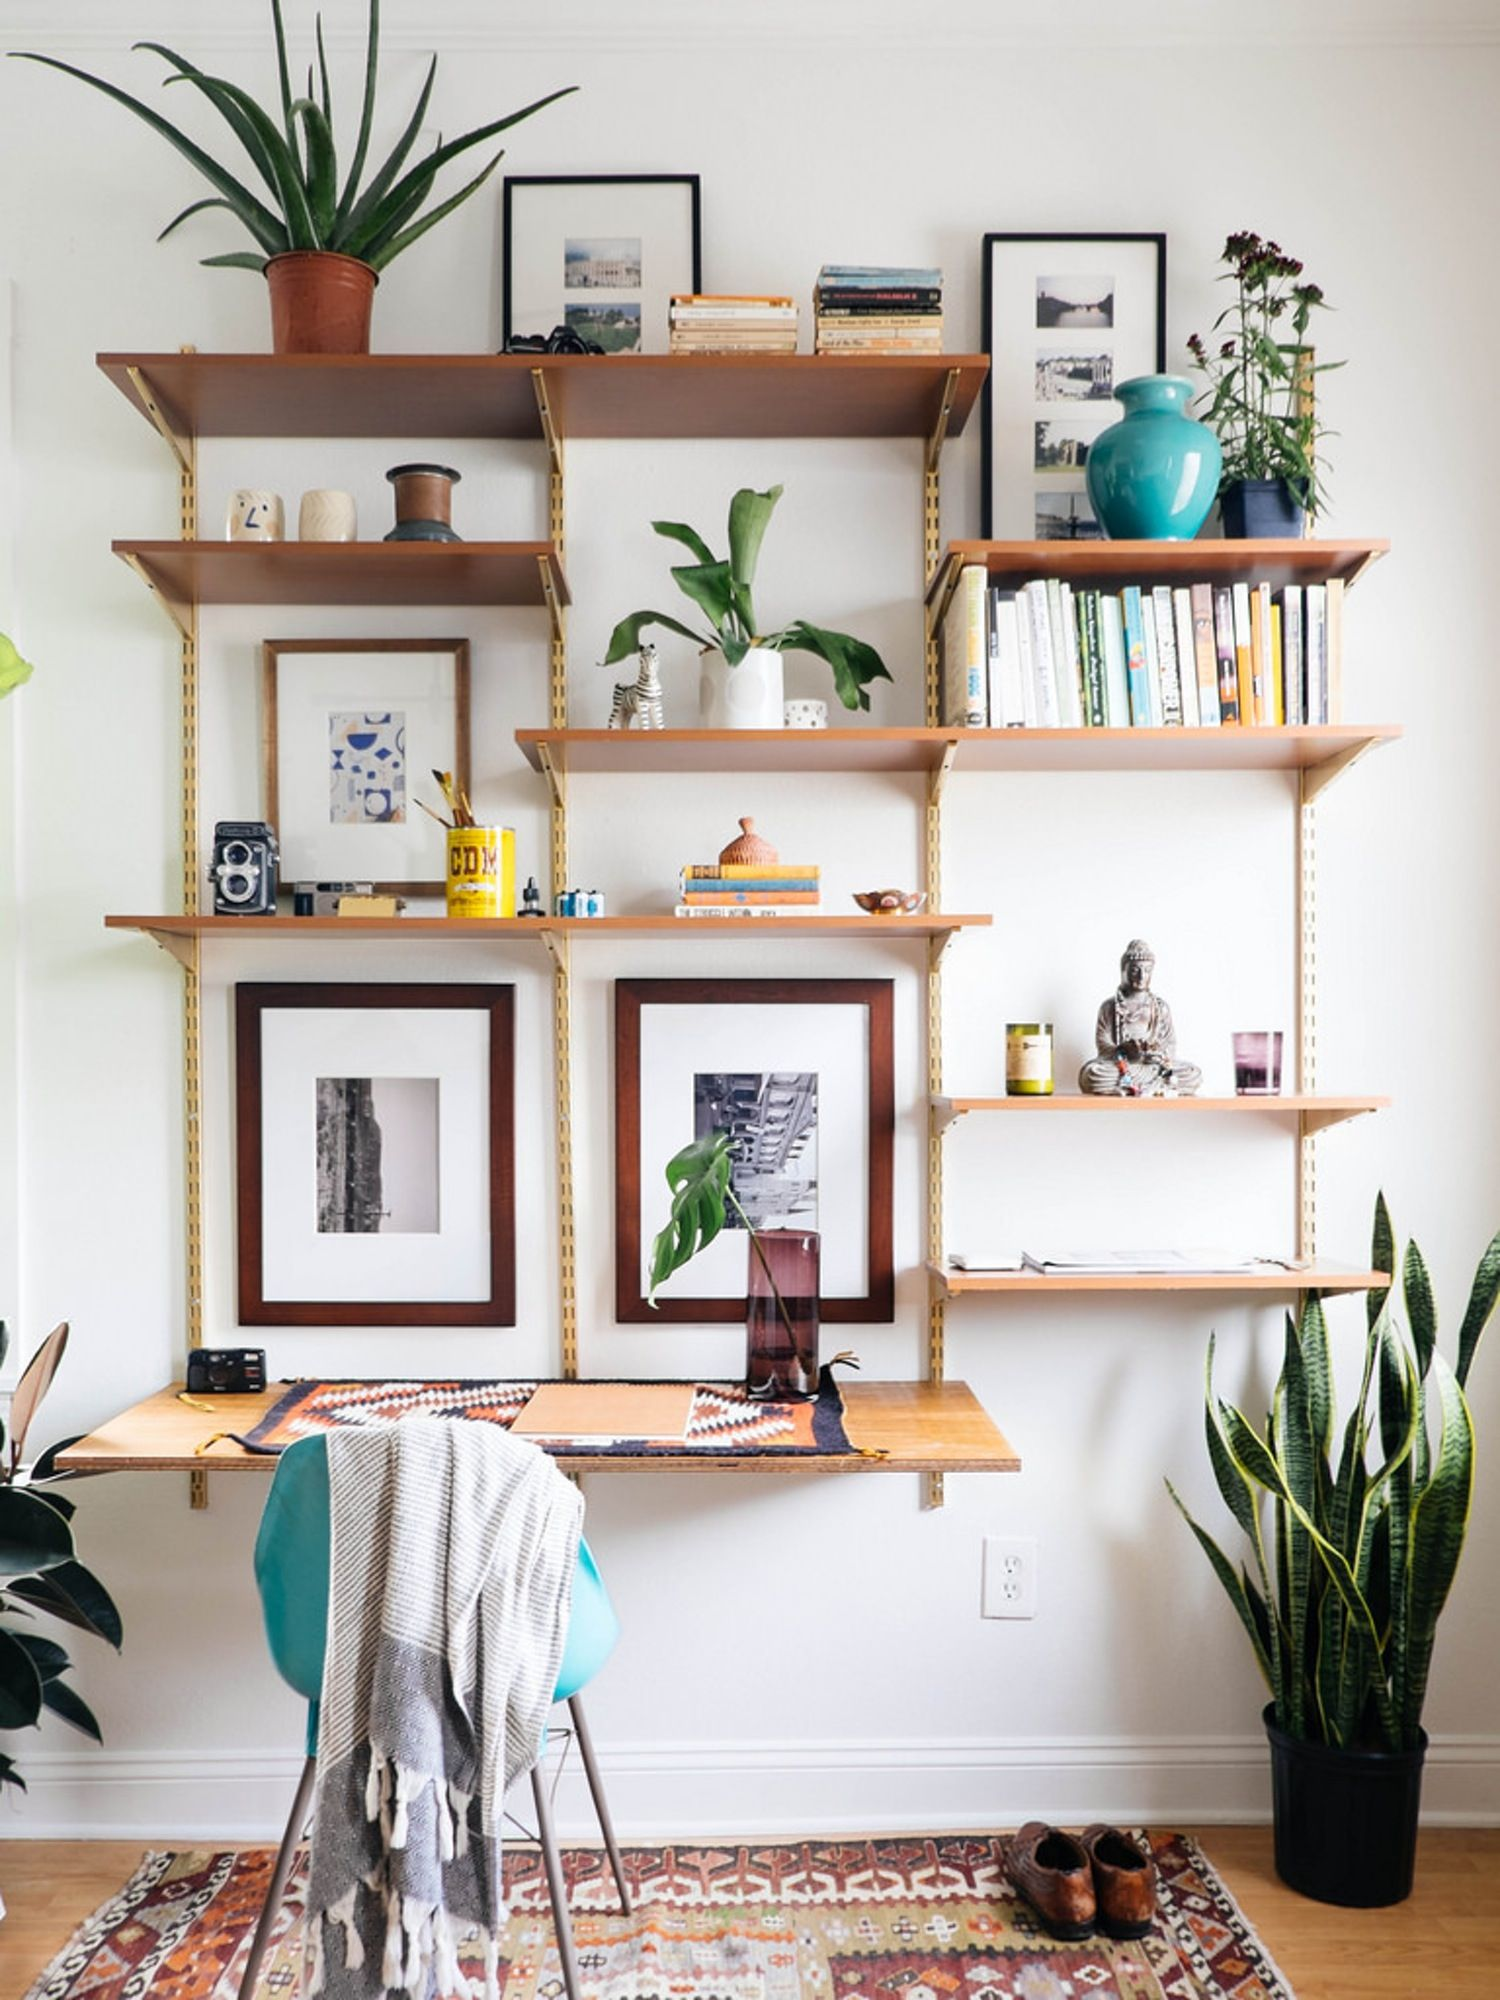 WallMounted Shelving Systems You Can DIY (With images